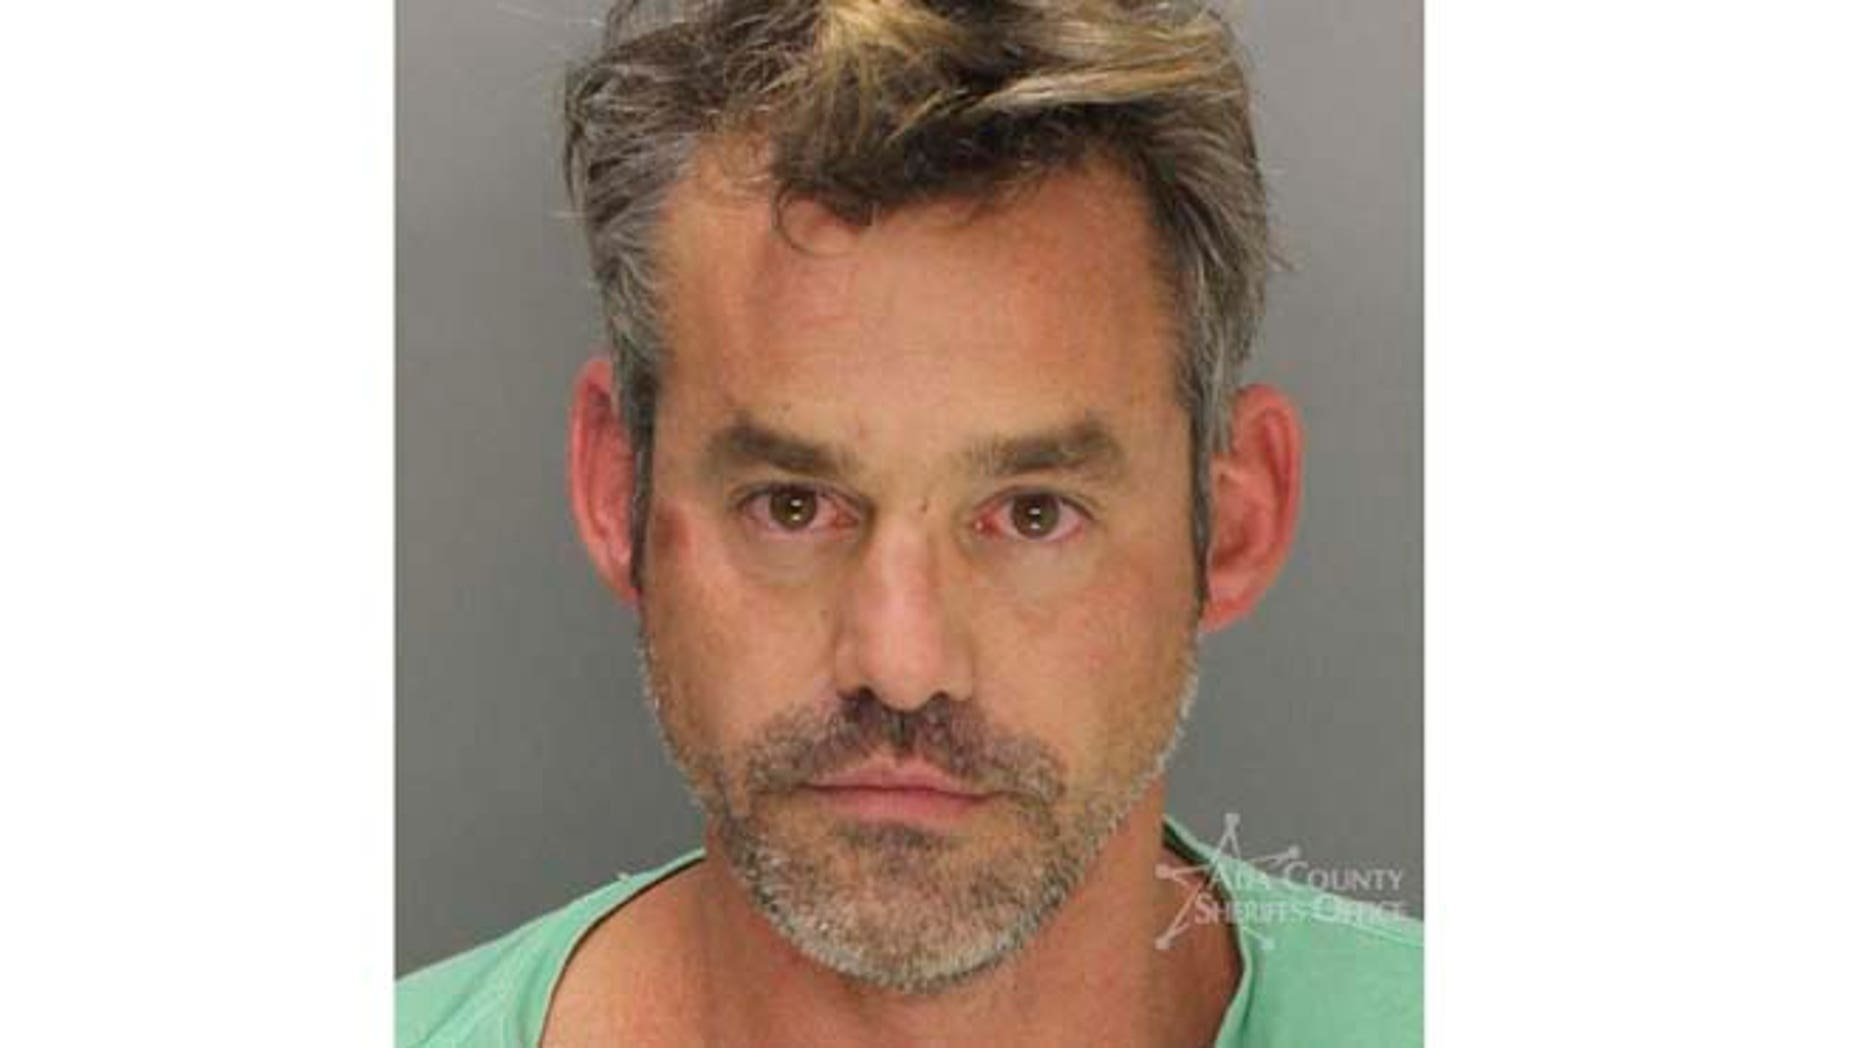 Oct. 17, 2014. Booking photo provided by Ada County Sheriff of actor Nicholas Brendon, of Sherman Oaks, Calif., after he was arrested in Boise, Idaho.